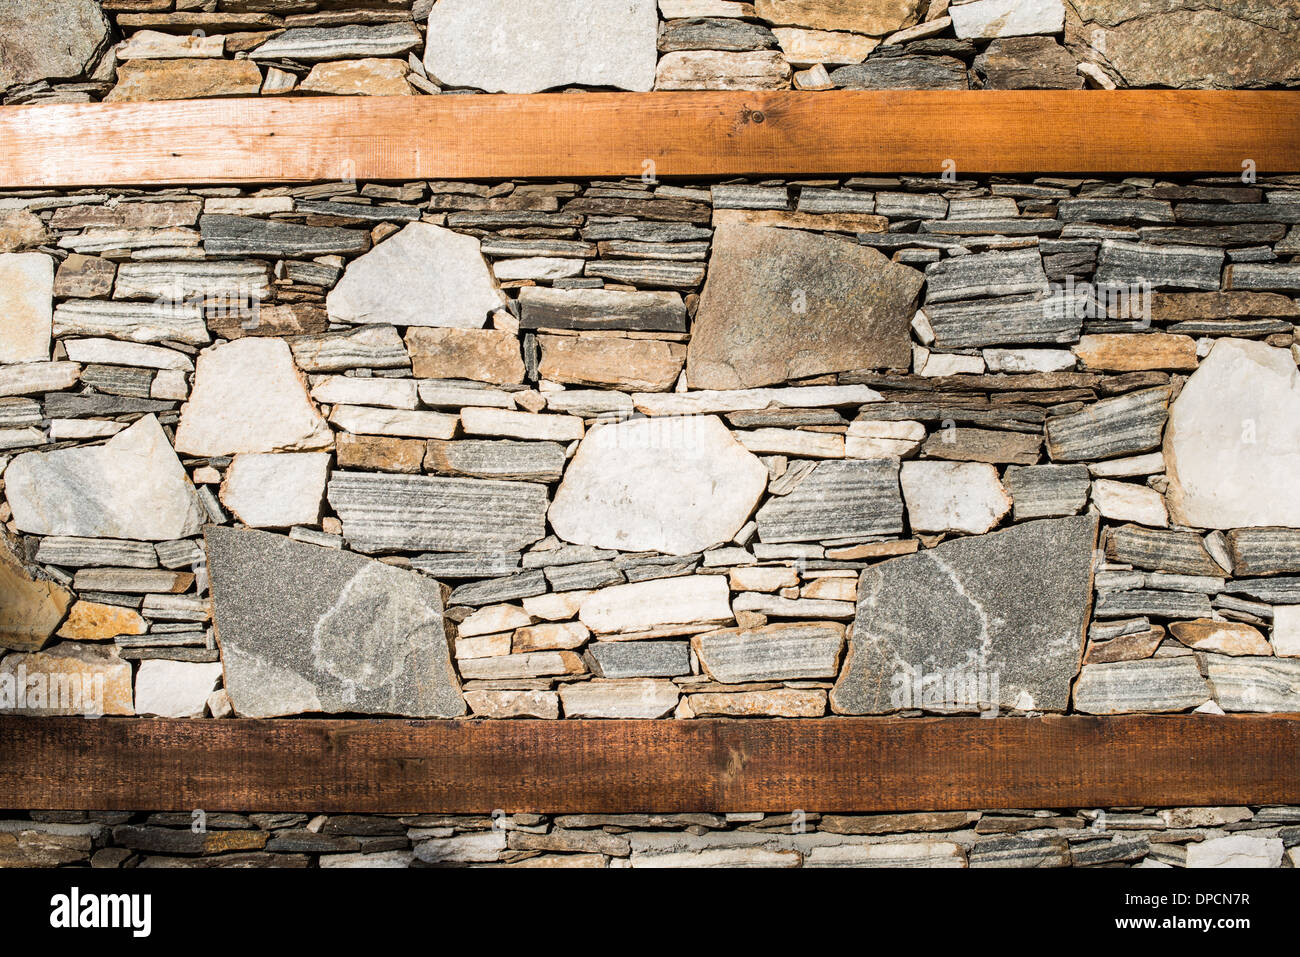 old slate wall stockfotos old slate wall bilder seite 2 alamy. Black Bedroom Furniture Sets. Home Design Ideas